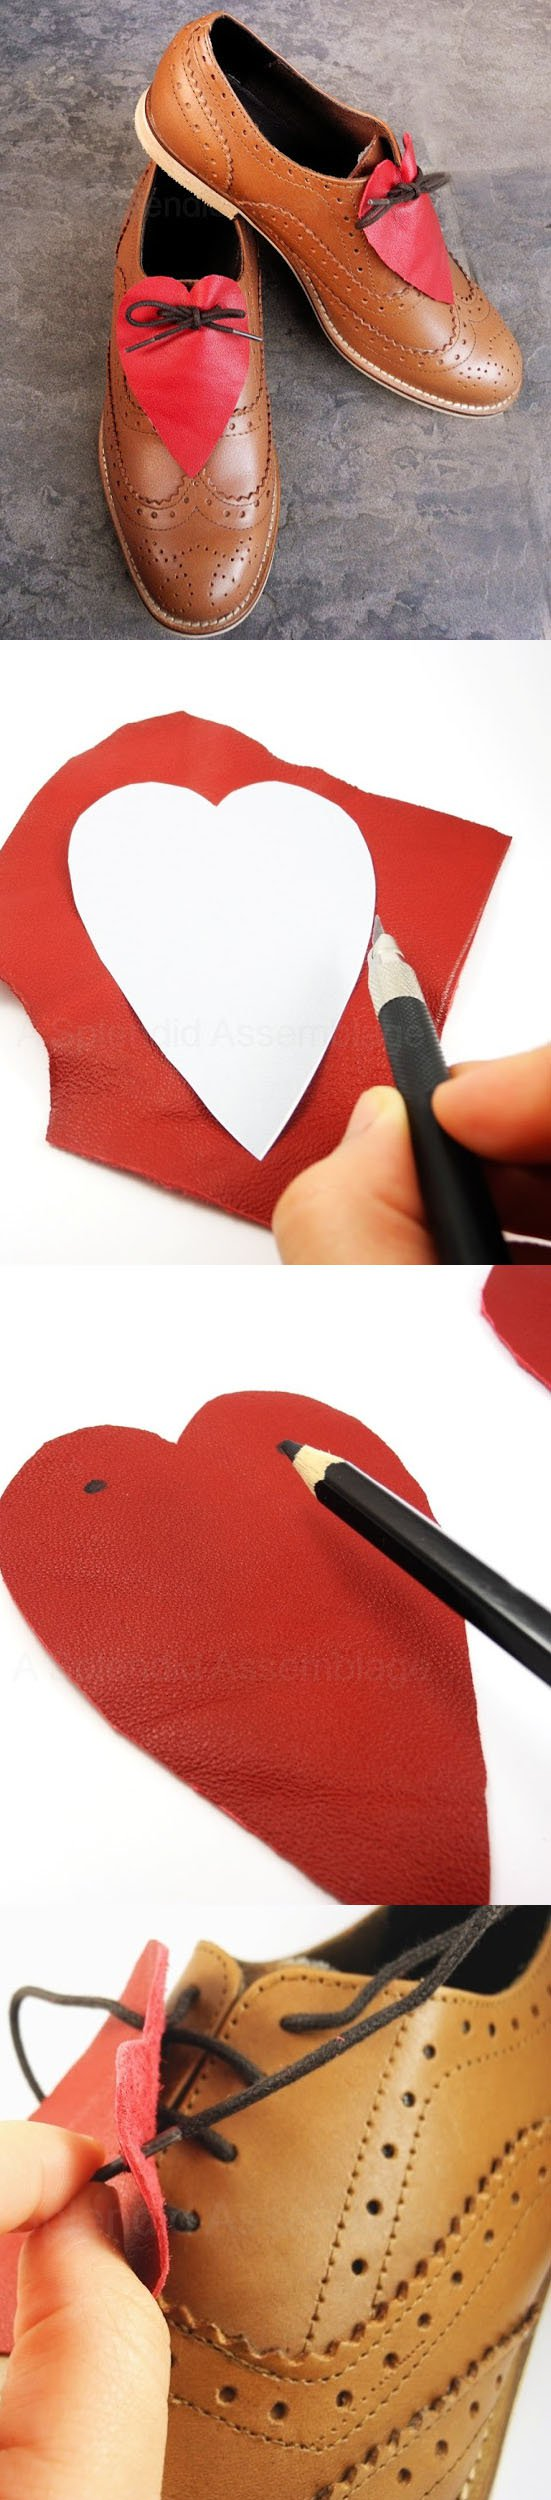 diy heart shoes